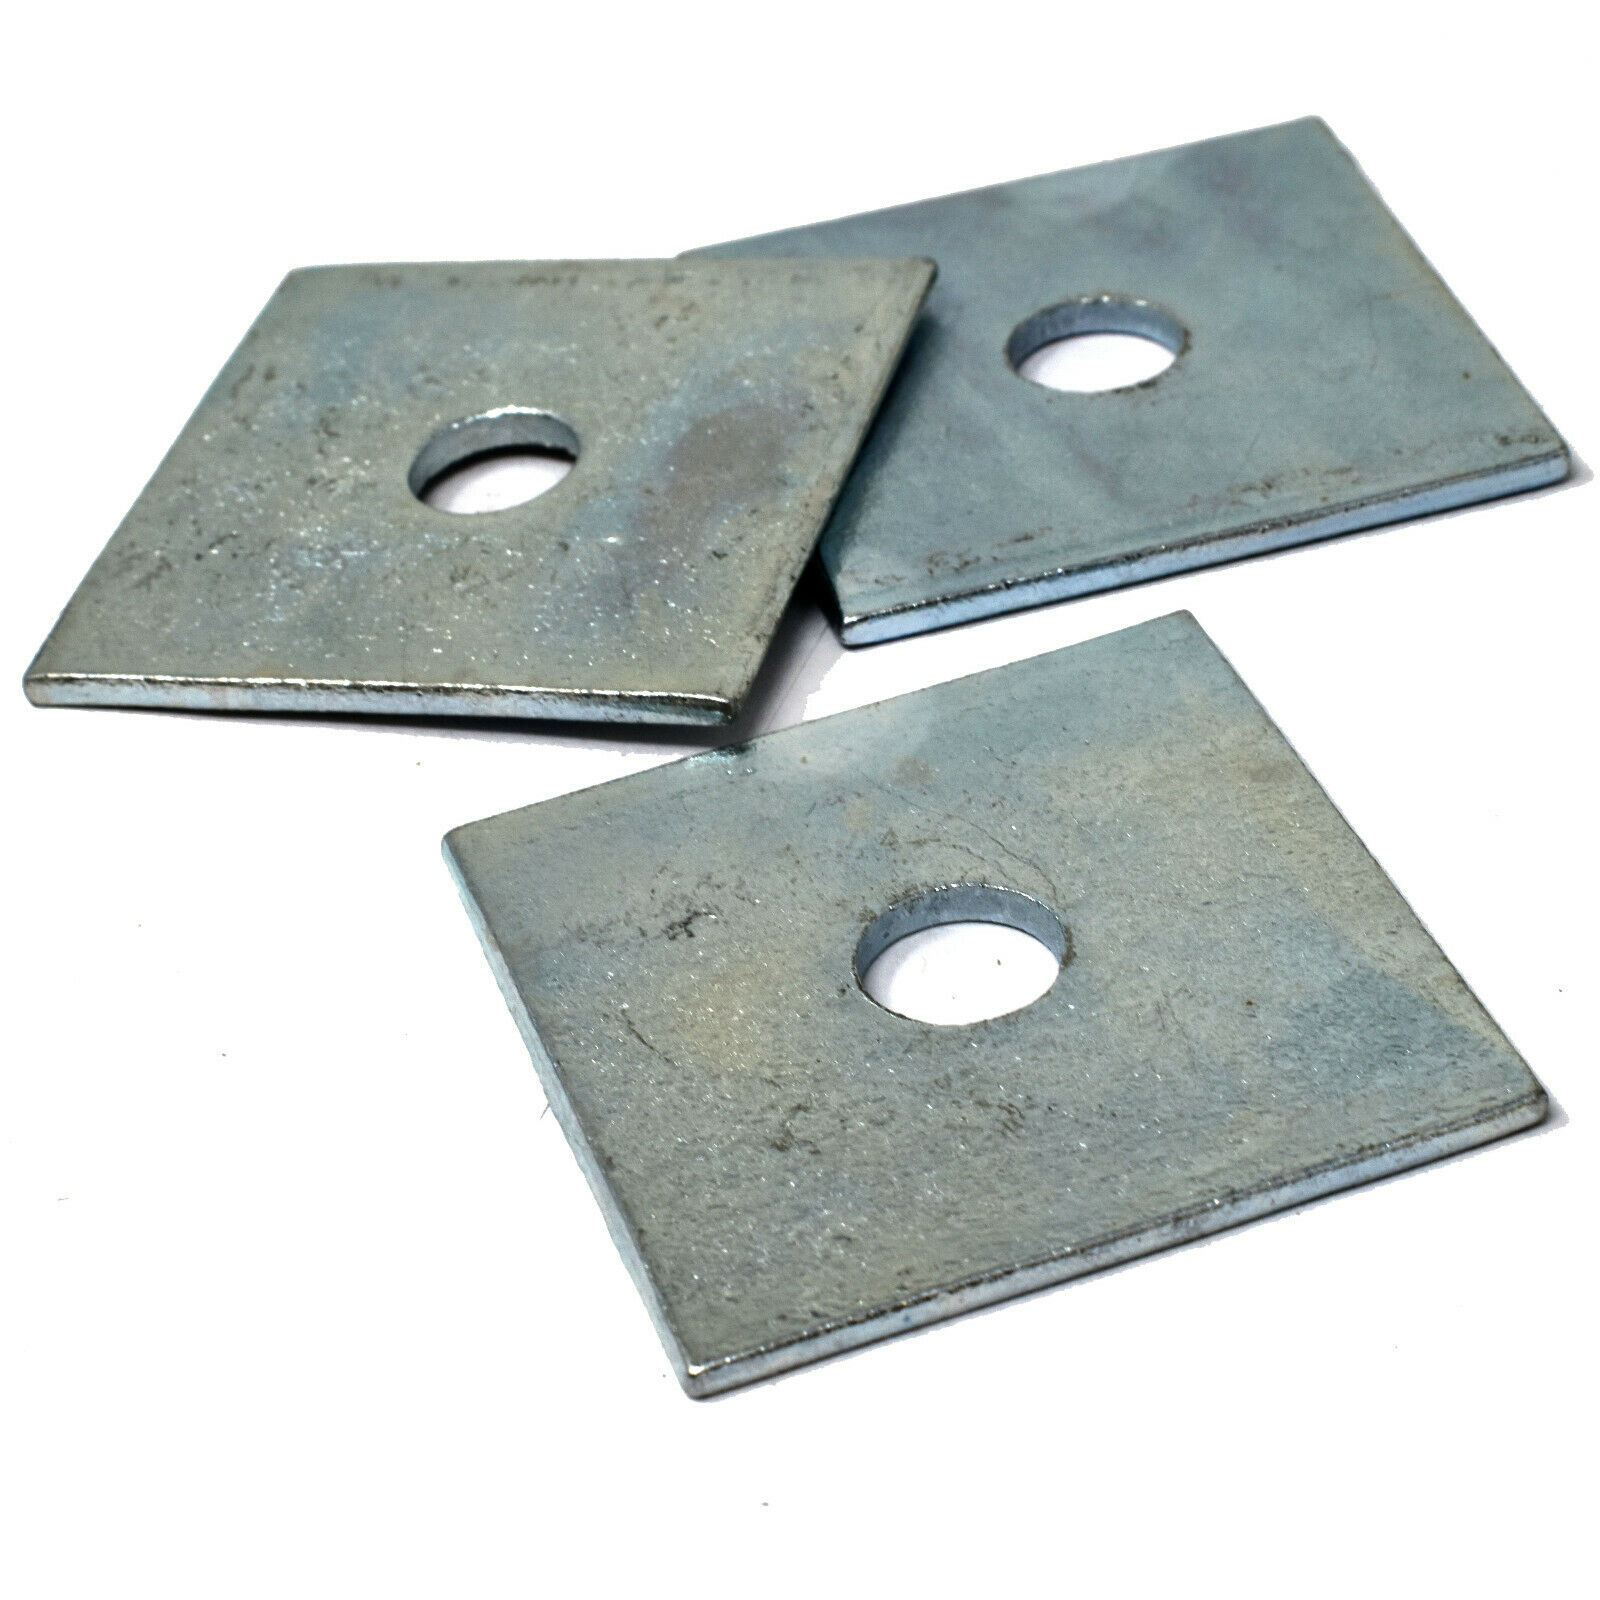 PACK OF 30 50mm x 50mm x 10mm BRIGHT ZINC PLATED SQUARE PLATE WASHERS BZP *